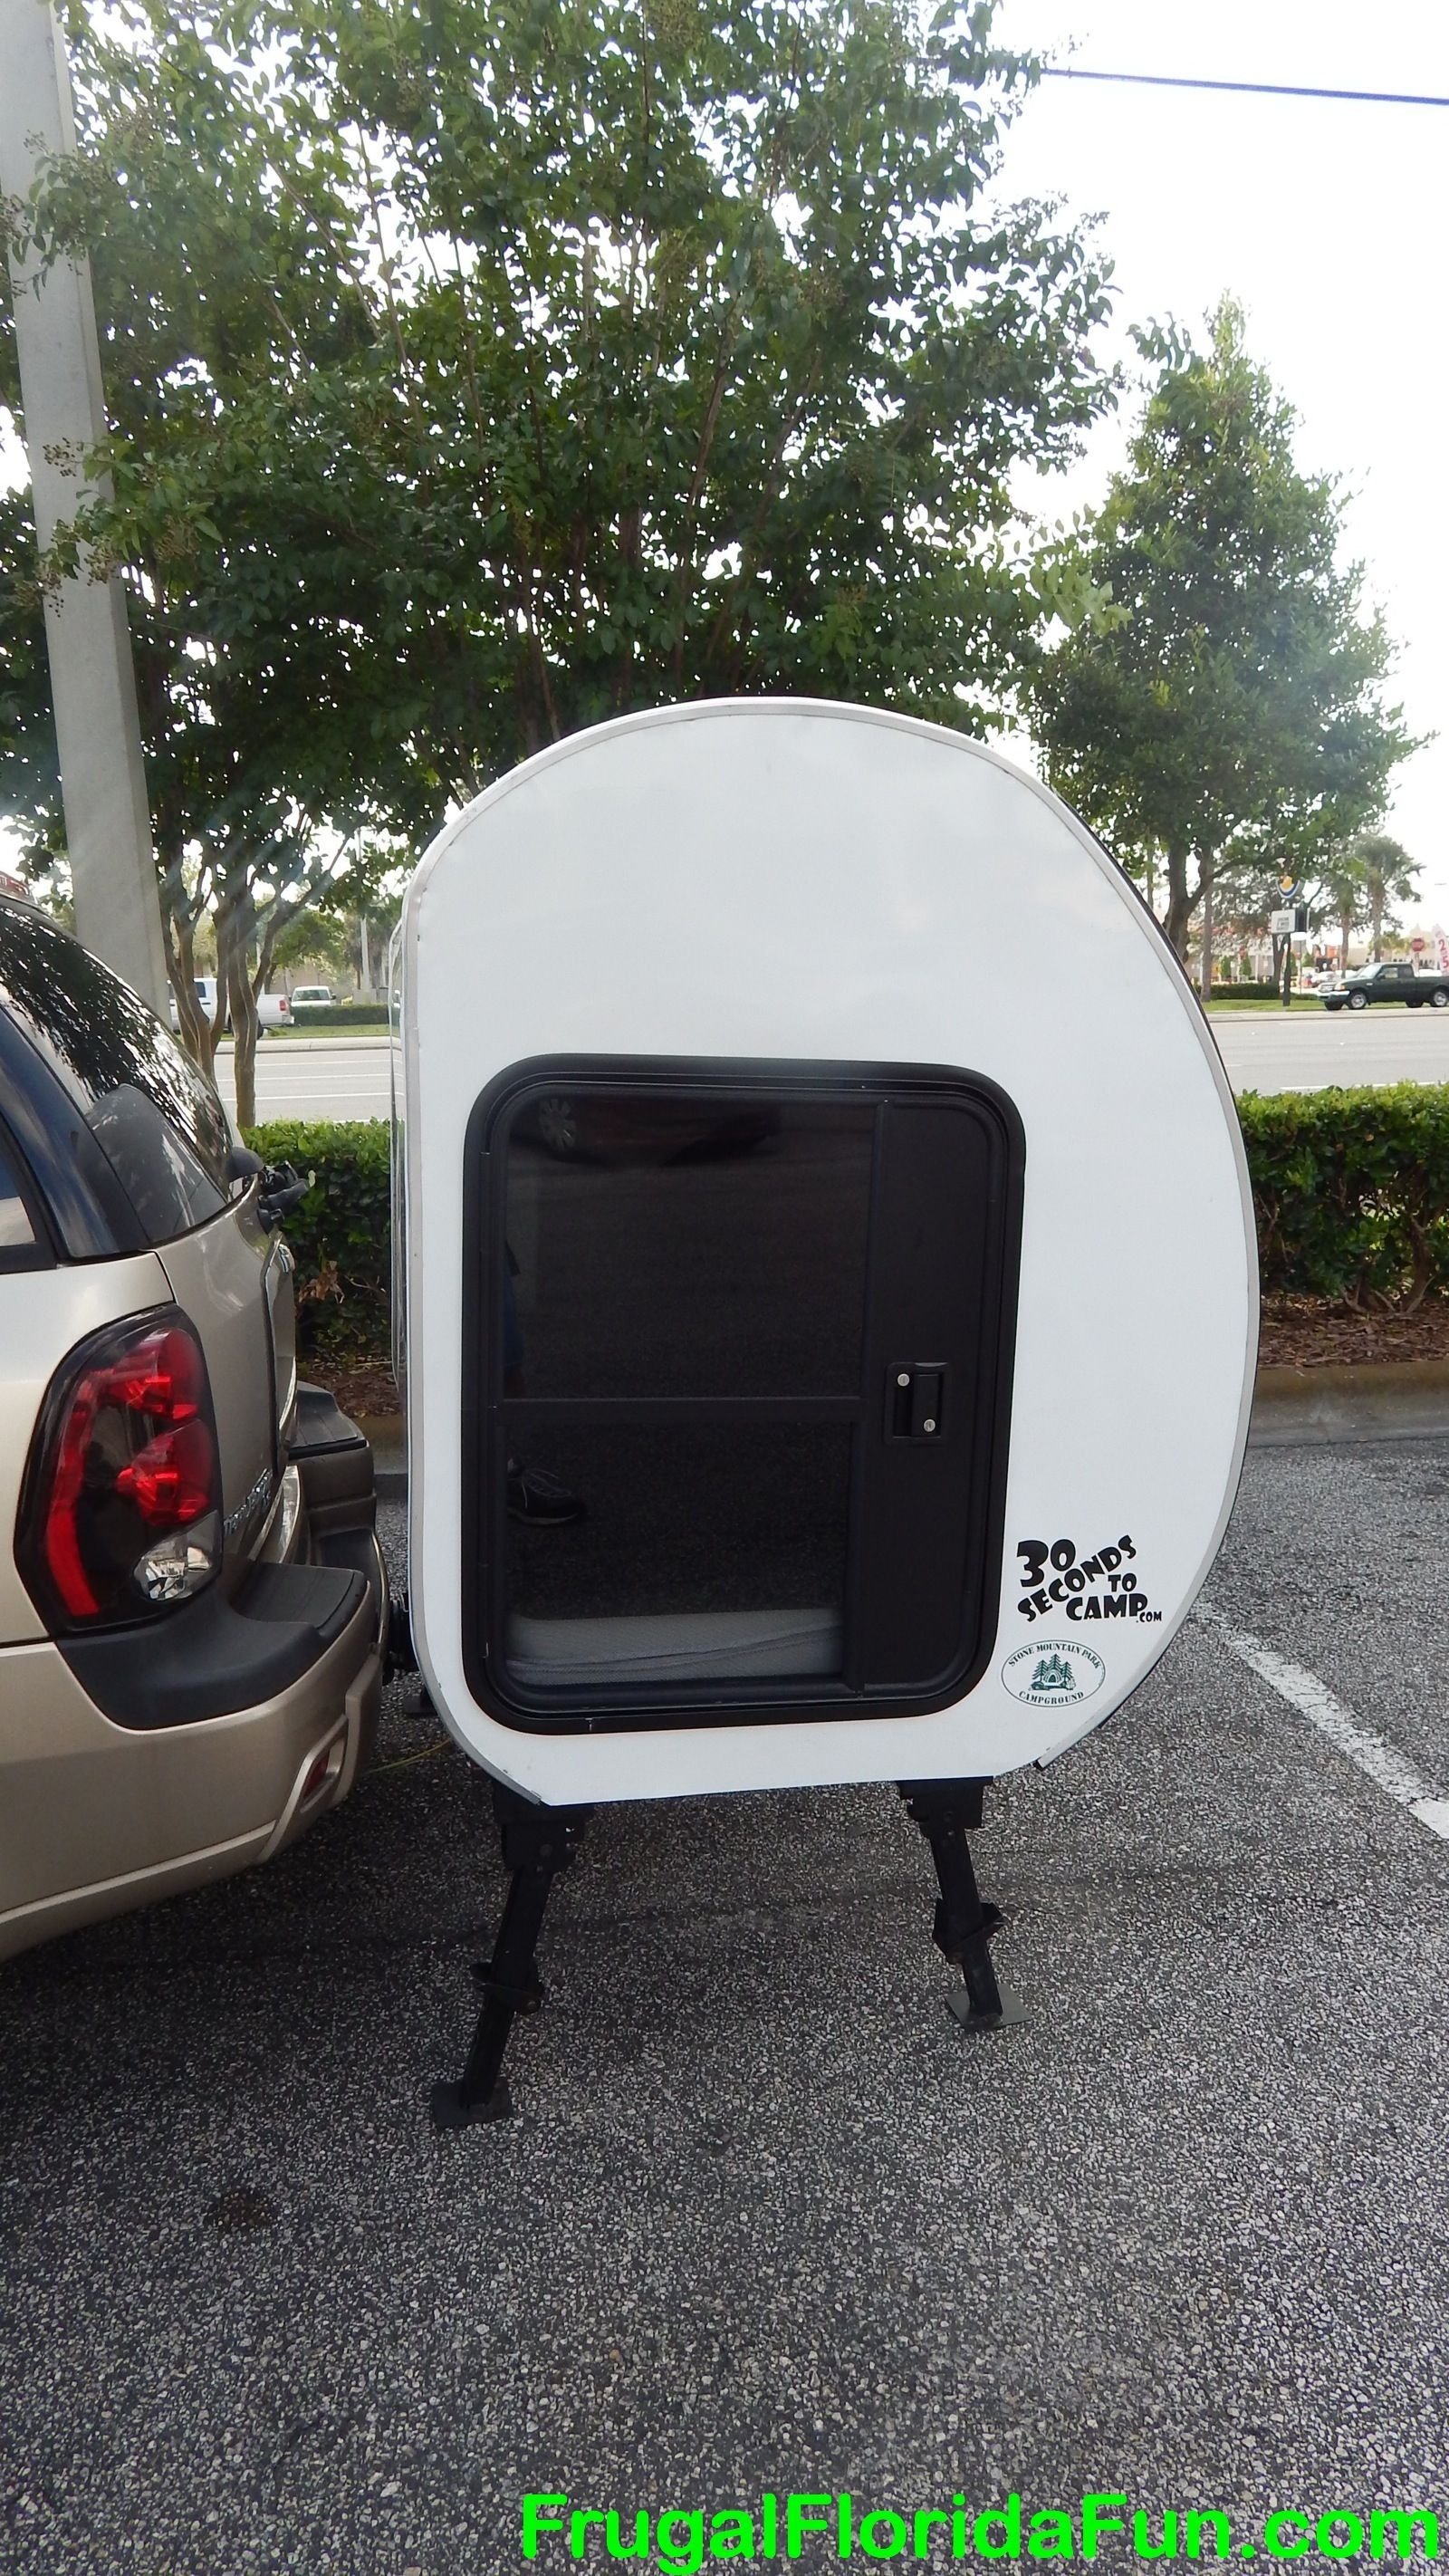 Camping POD By 30 Seconds To Camp